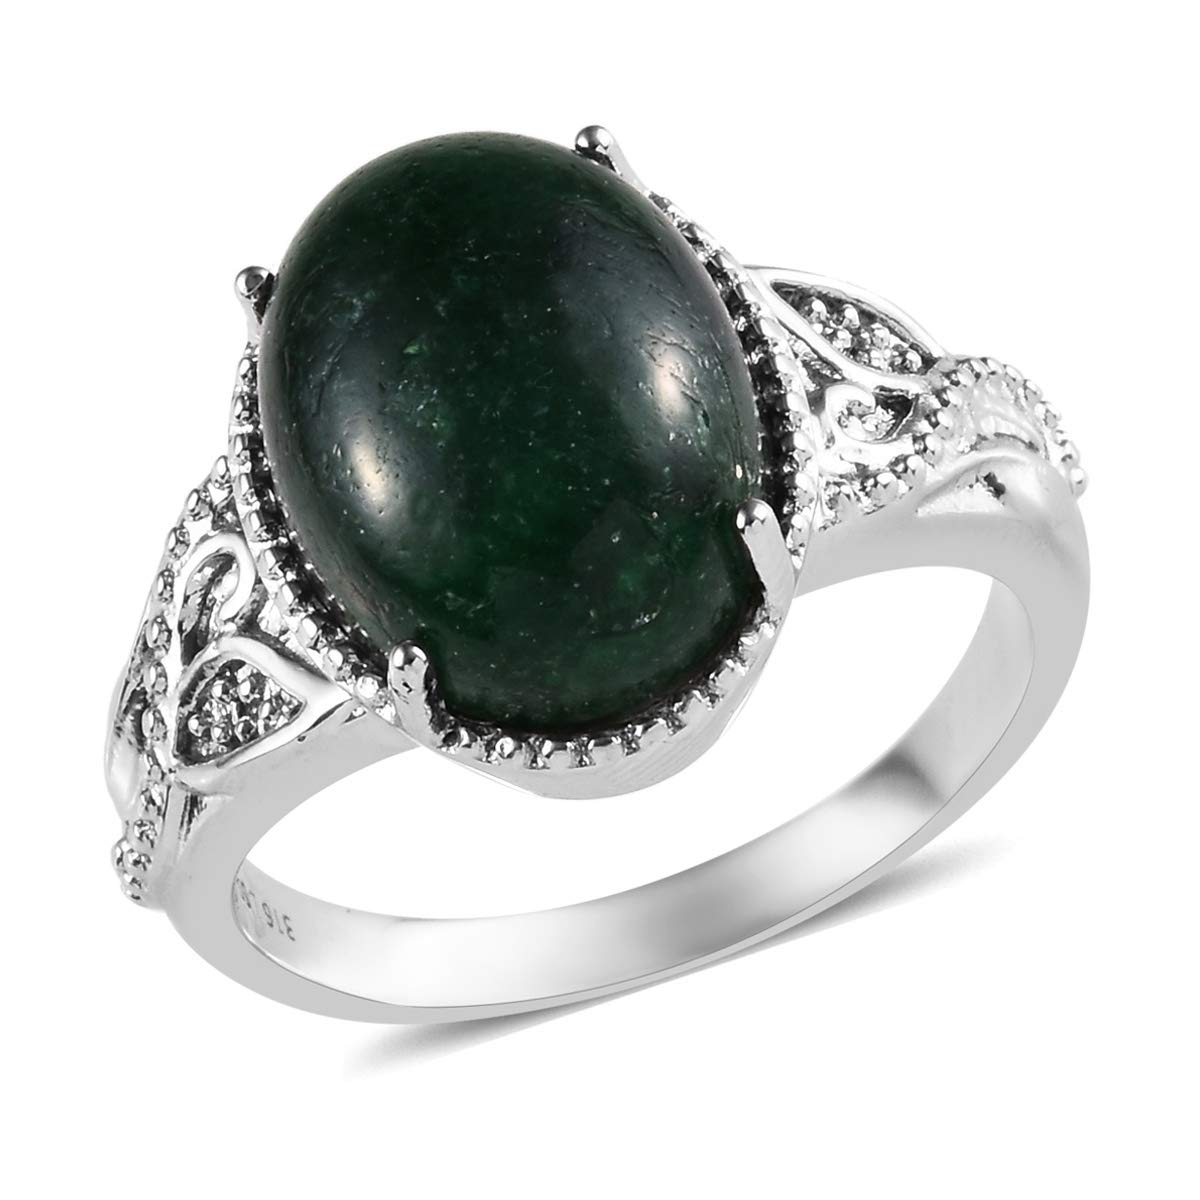 Shop LC Delivering Joy Solitaire Ring Stainless Steel Oval Green Aventurine Jewelry for Women Size 7